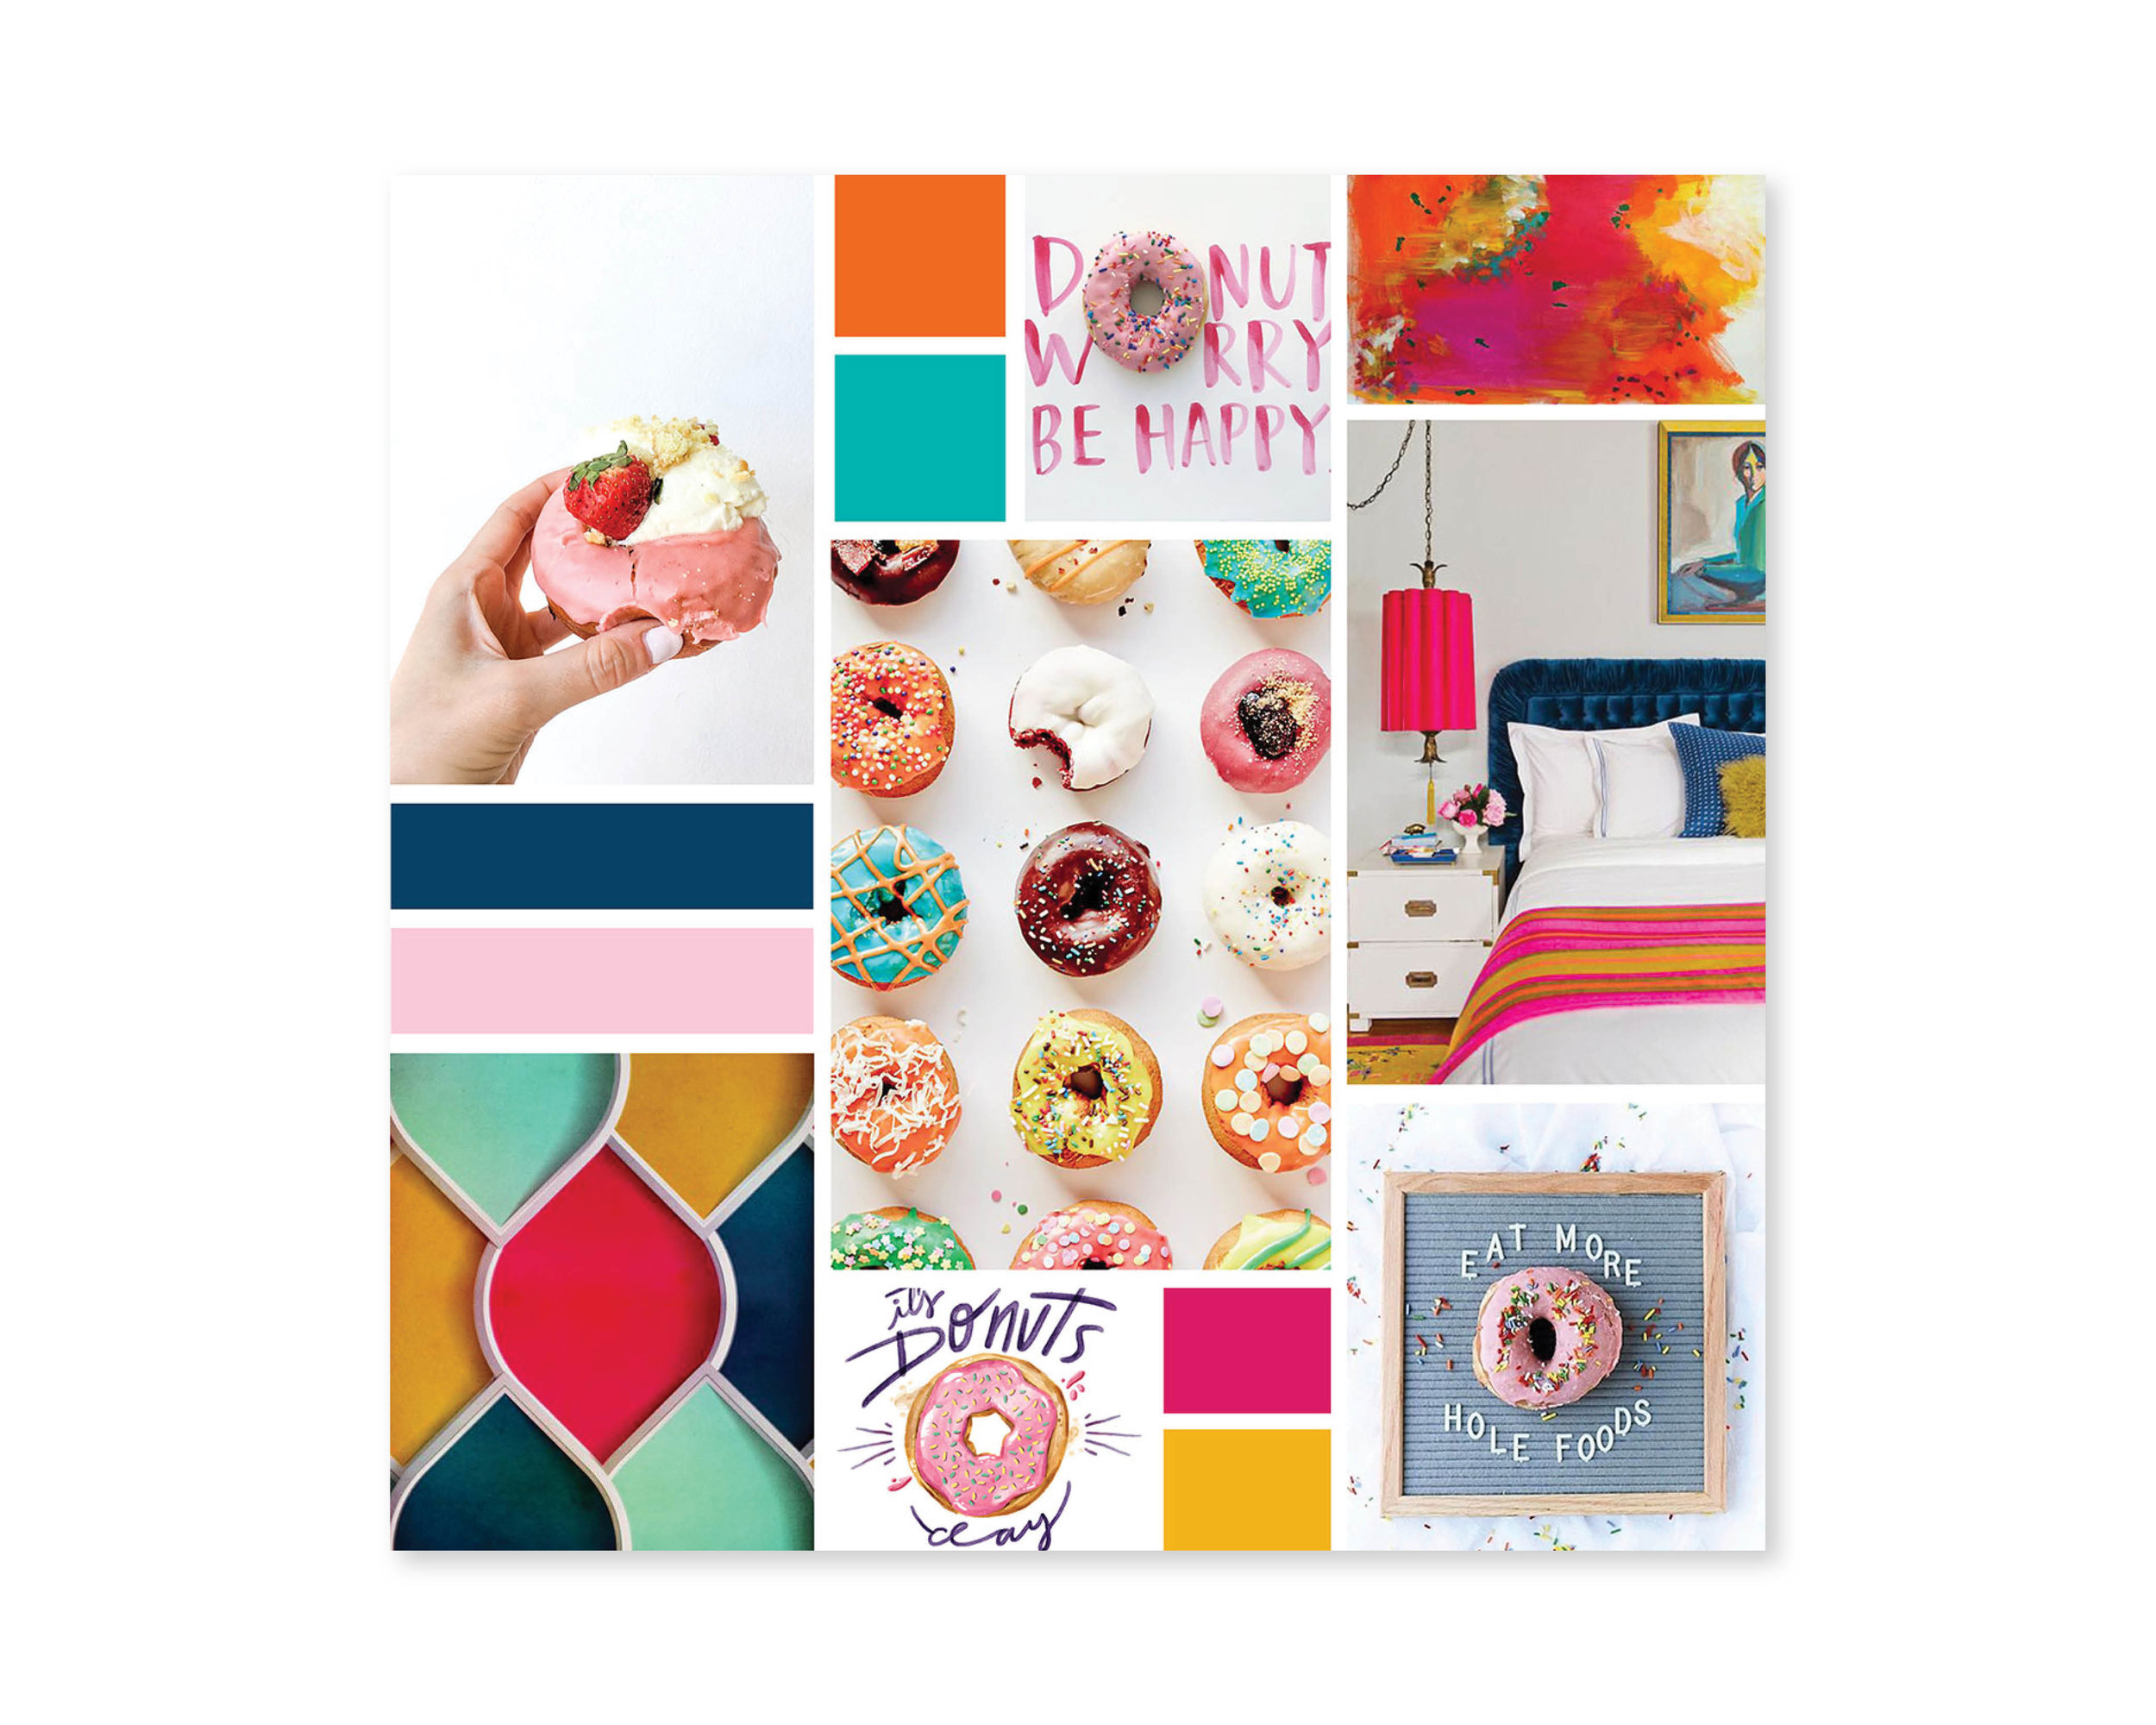 Donuts for Miles branding by Casi Long Design | casilong.com 3.jpg